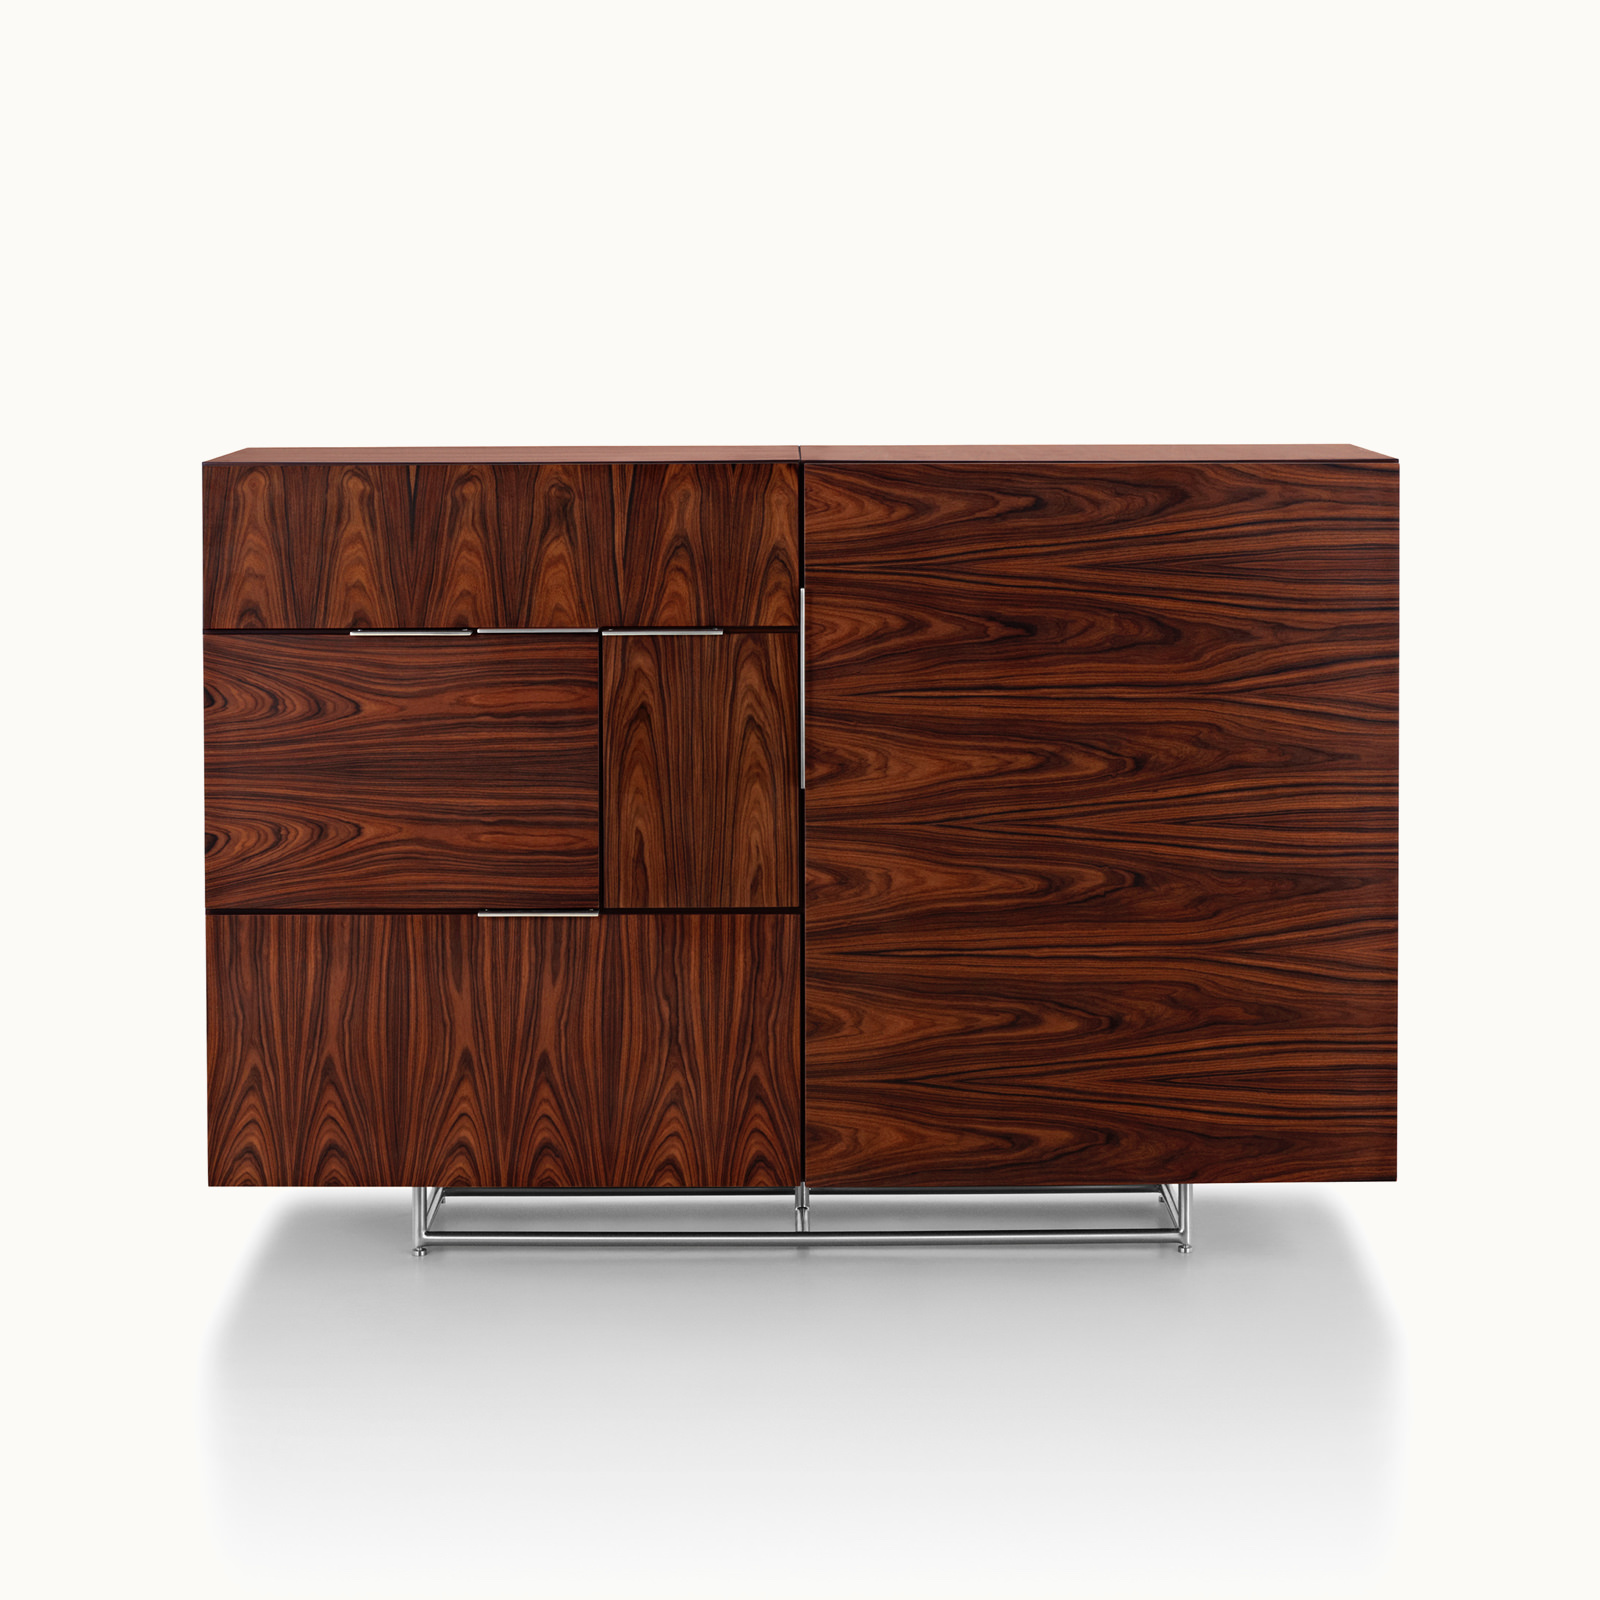 A Domino Storage sideboard with a dark wood finish and a mix of grain direction, viewed from the front.